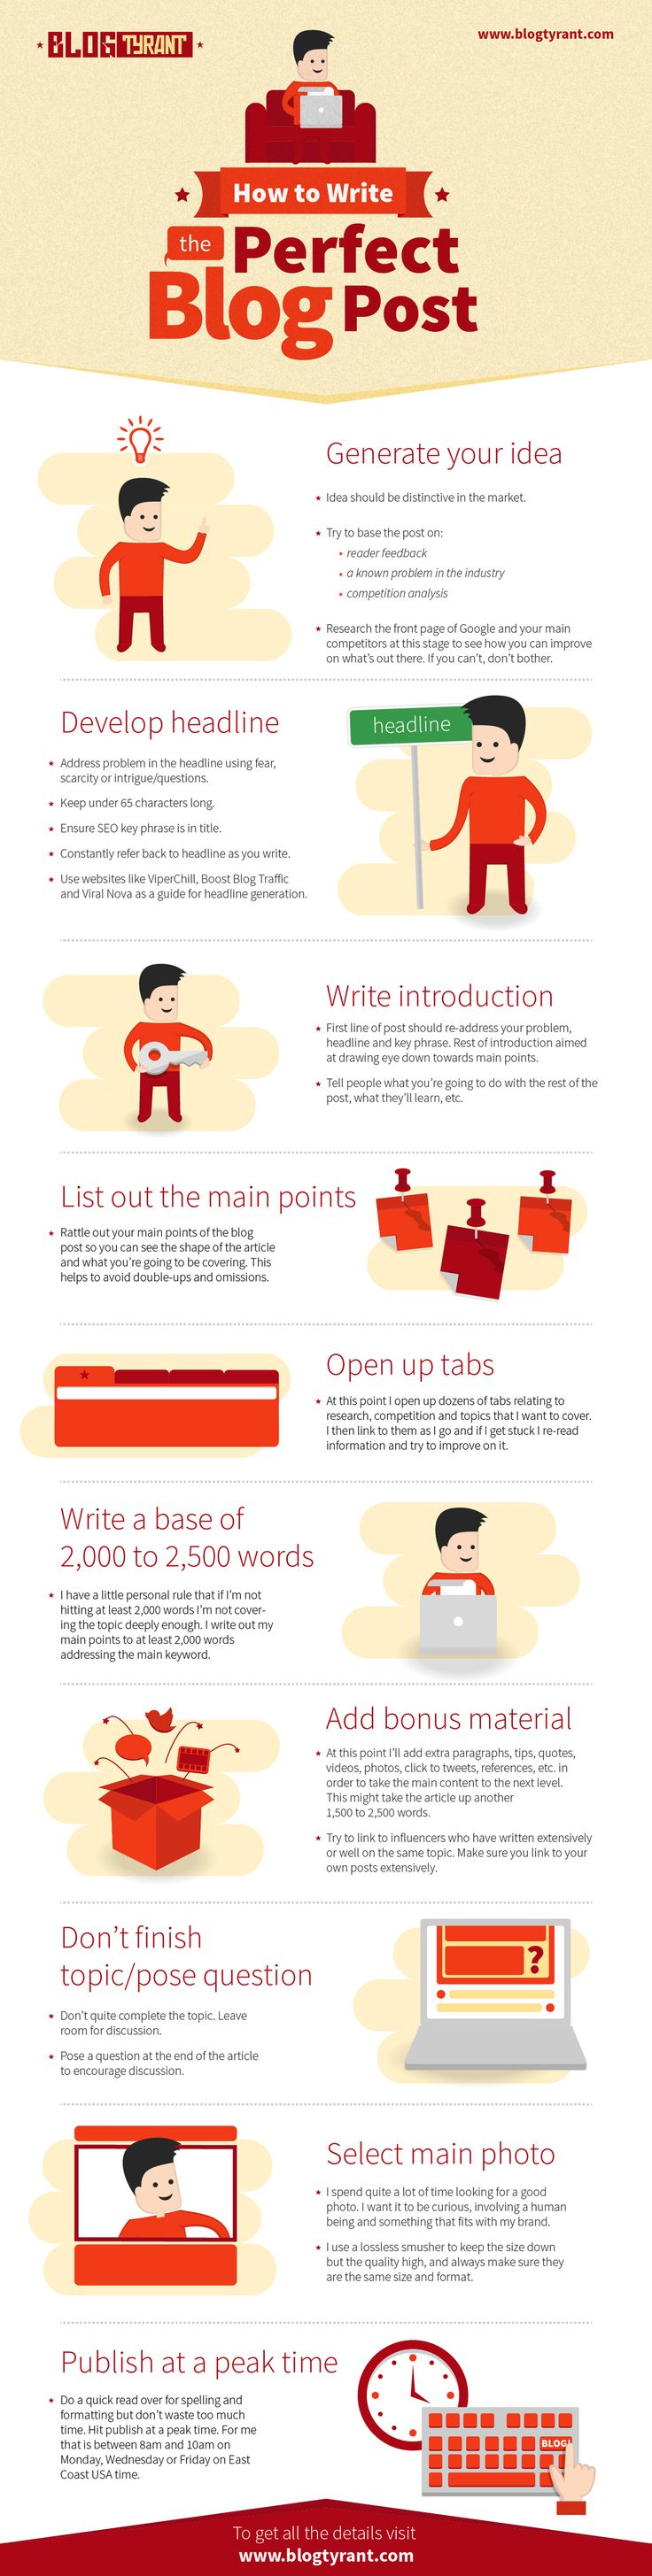 Want to learn how to write the perfect blog post? Of course you do! Let's start with a nifty infographic you can save for future reference